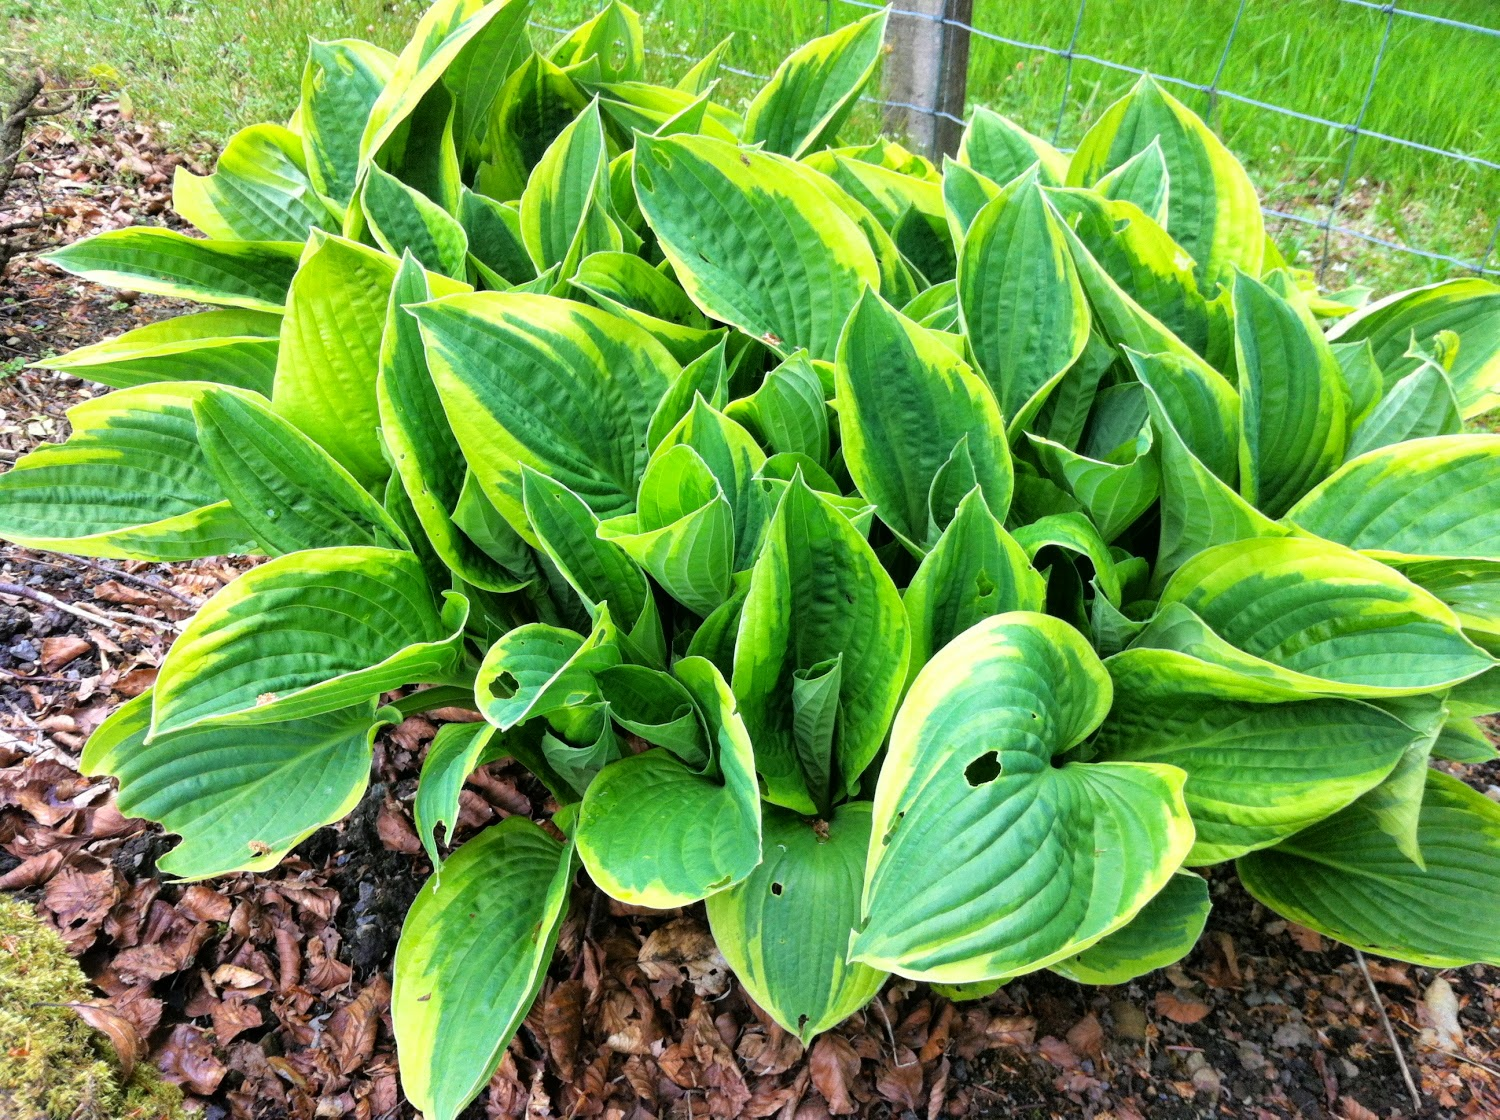 An image of hosta leaves